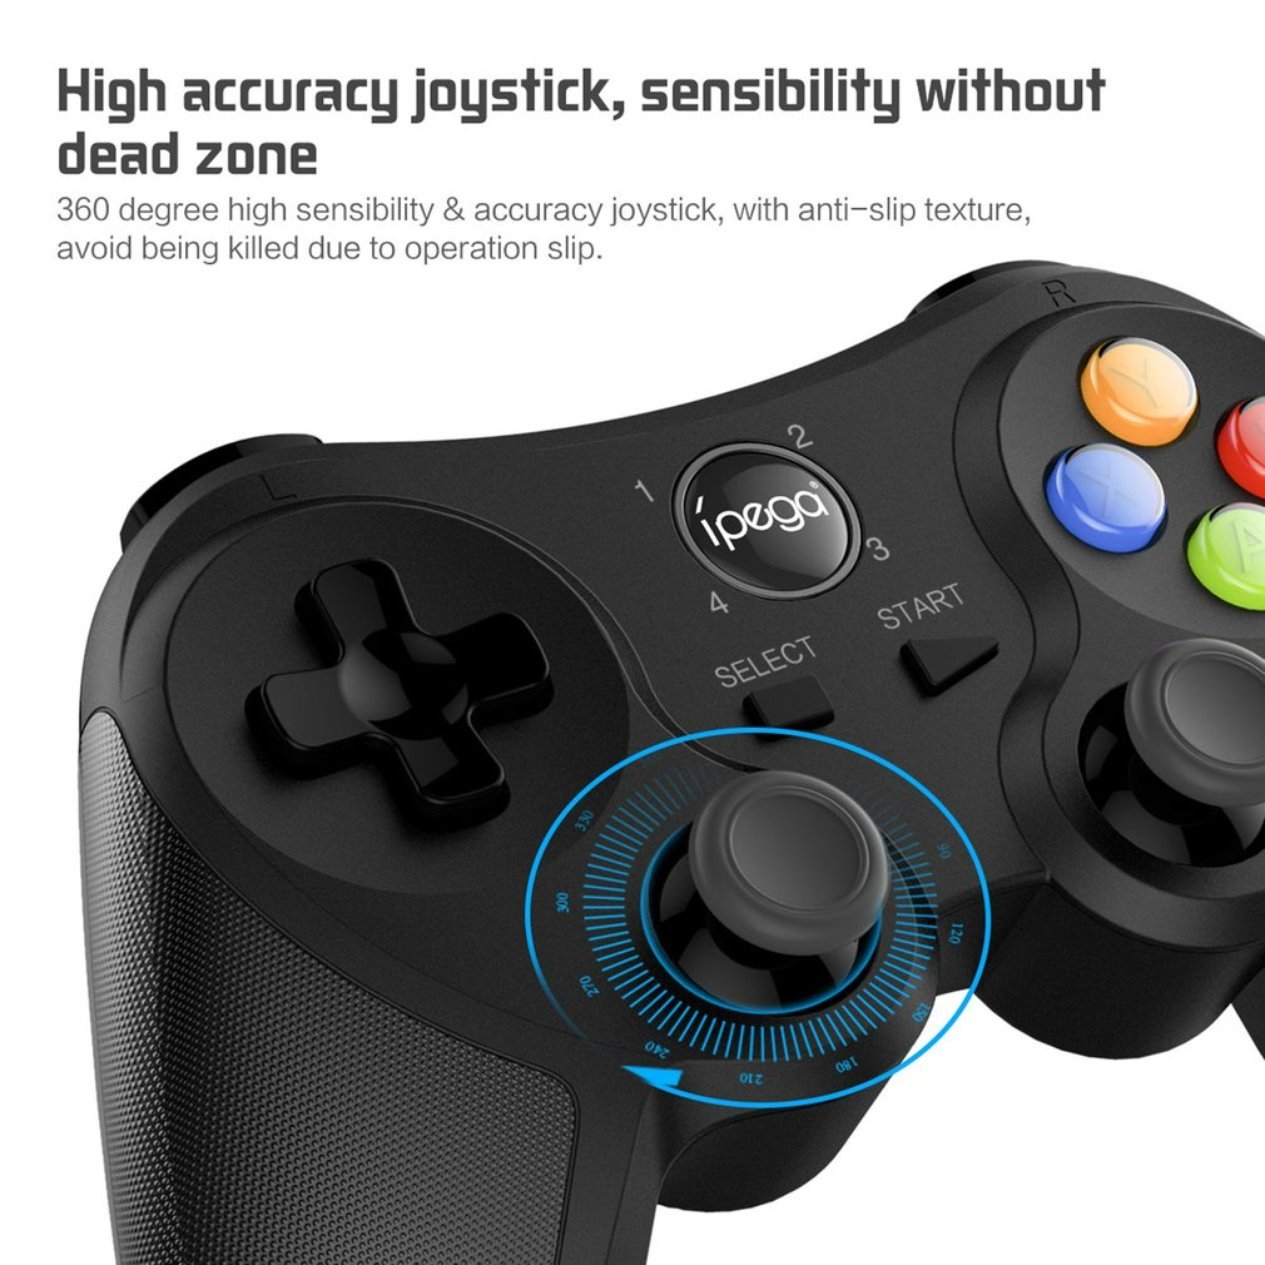 Bluetooth Gaming Joystick Gamepad, Hilos del Juego de la manija Ajustable Gaming Controller, para iOS Android Smartphone Tablets/Smart TV PC/Cajas de TV ...